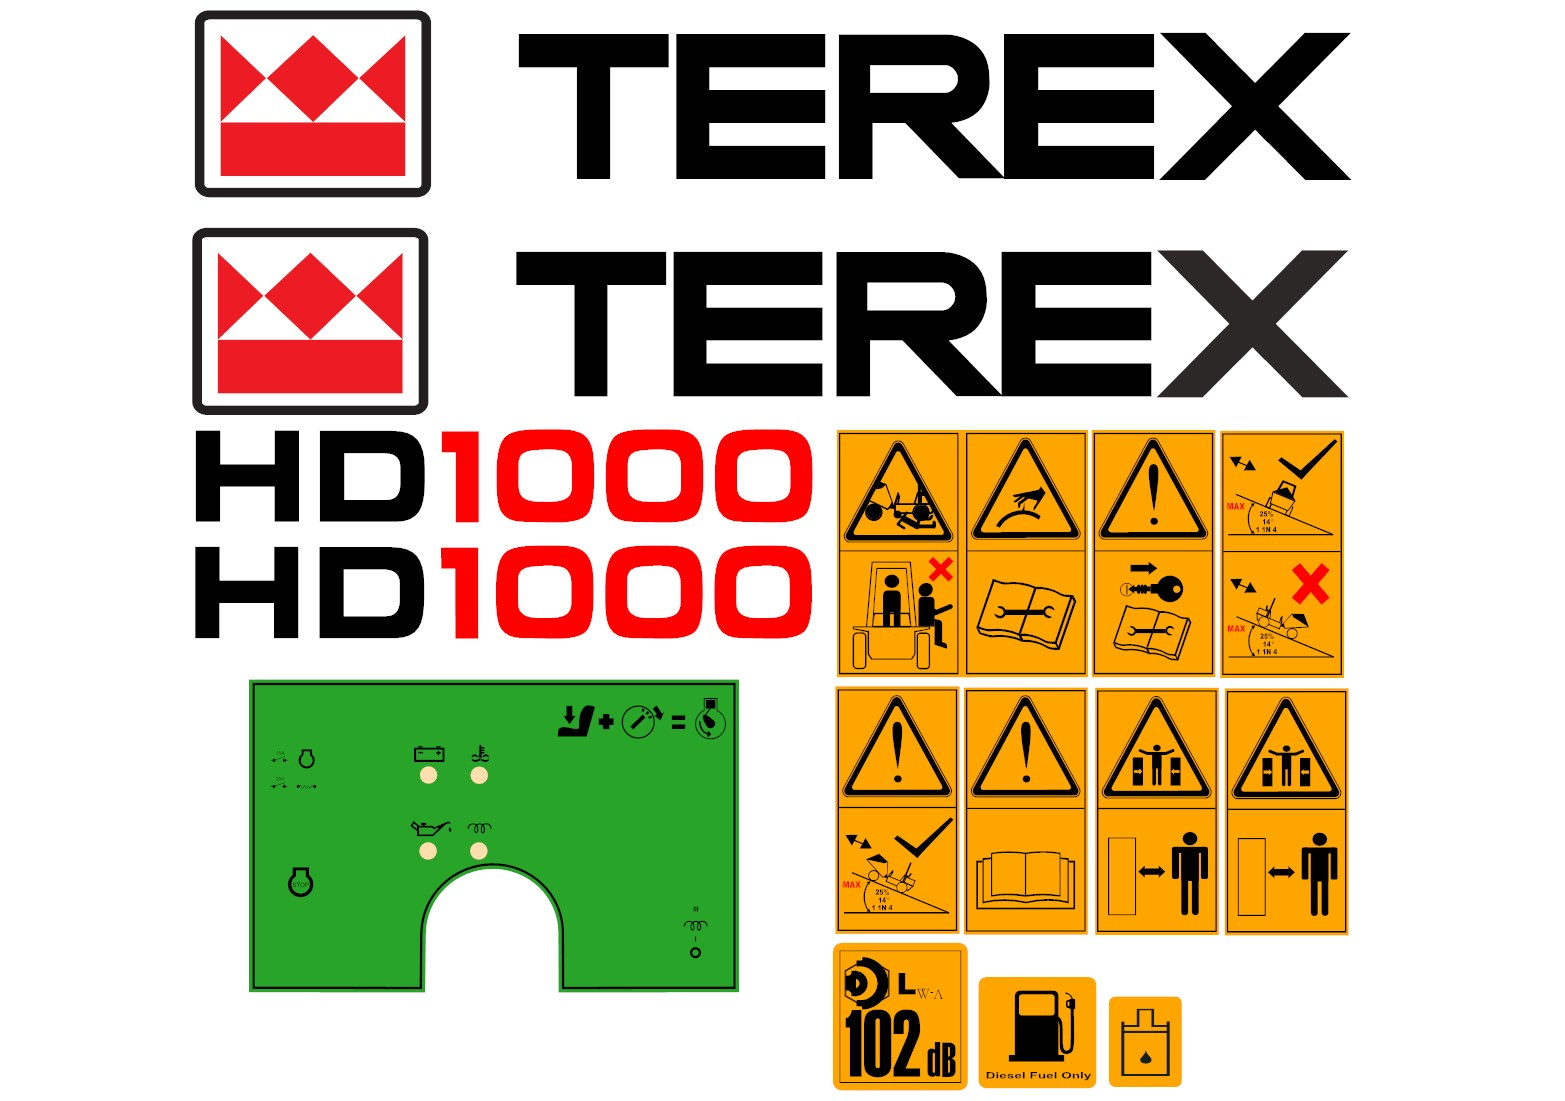 TEREX HD1000 terex hd1000 dumper decal set amc machinery decals terex hd1000 wiring diagram at metegol.co